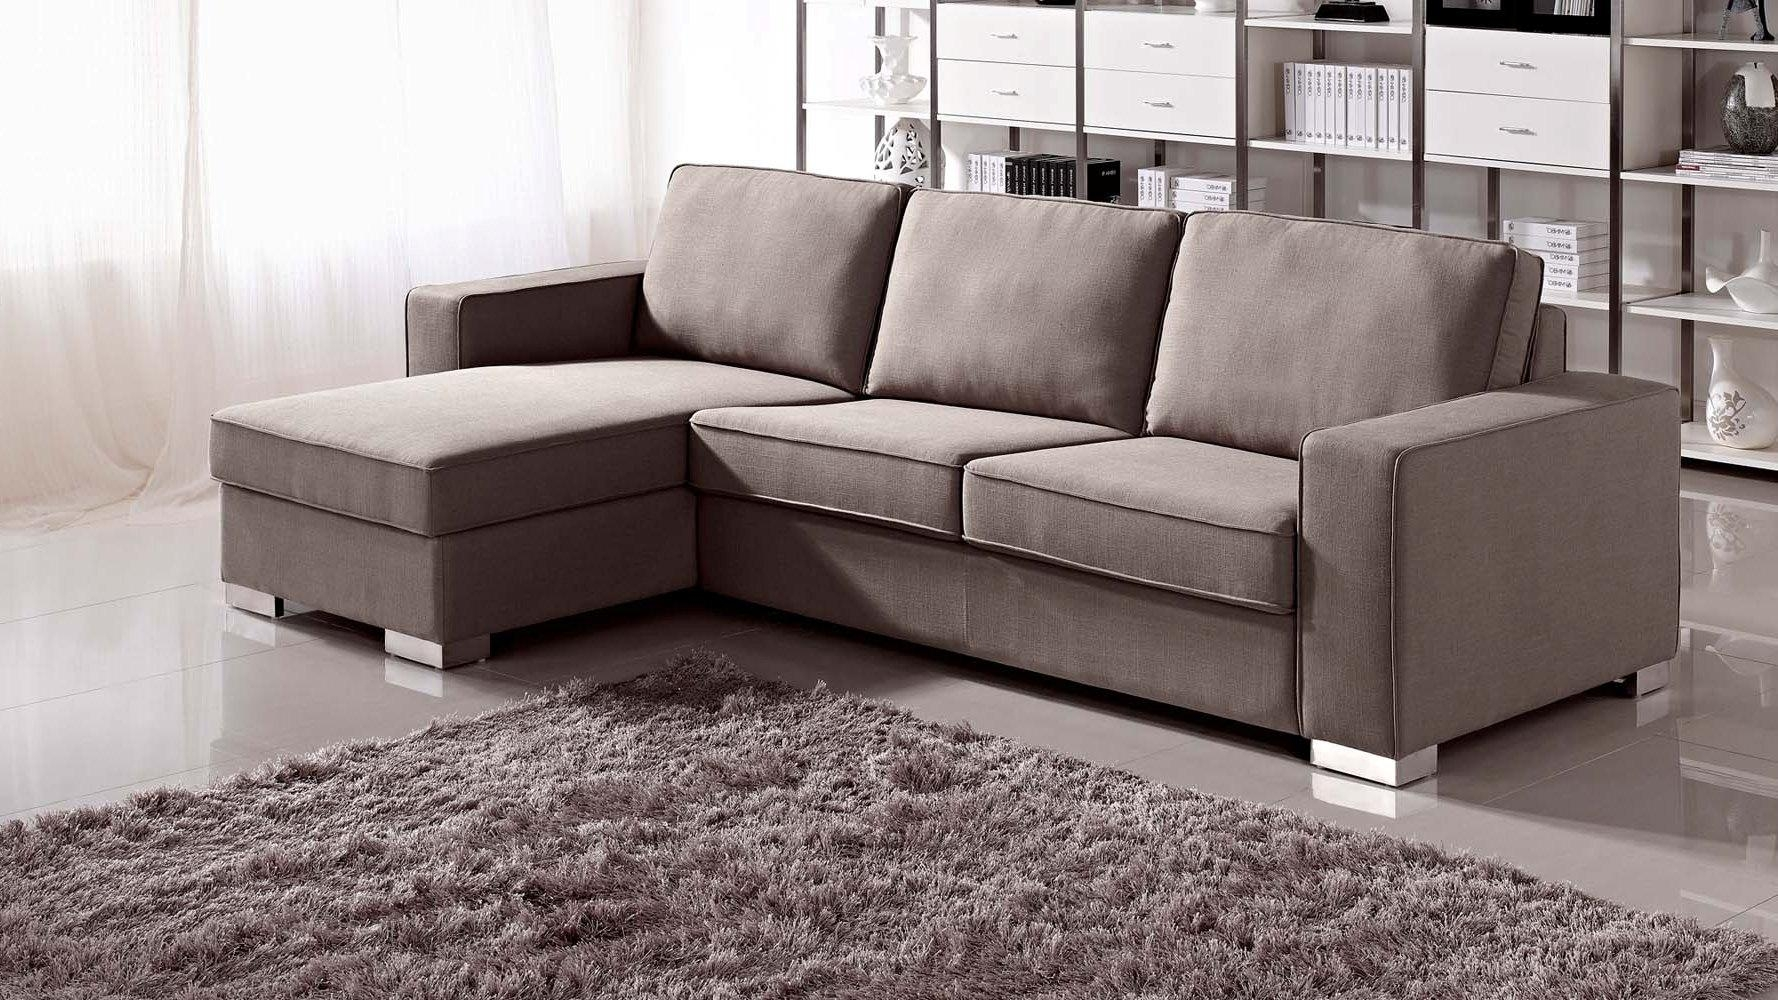 21 Choices Of Sectional Sofas With Sleeper And Chaise Sofa Ideas ~ Sectional Sofa With Sleeper